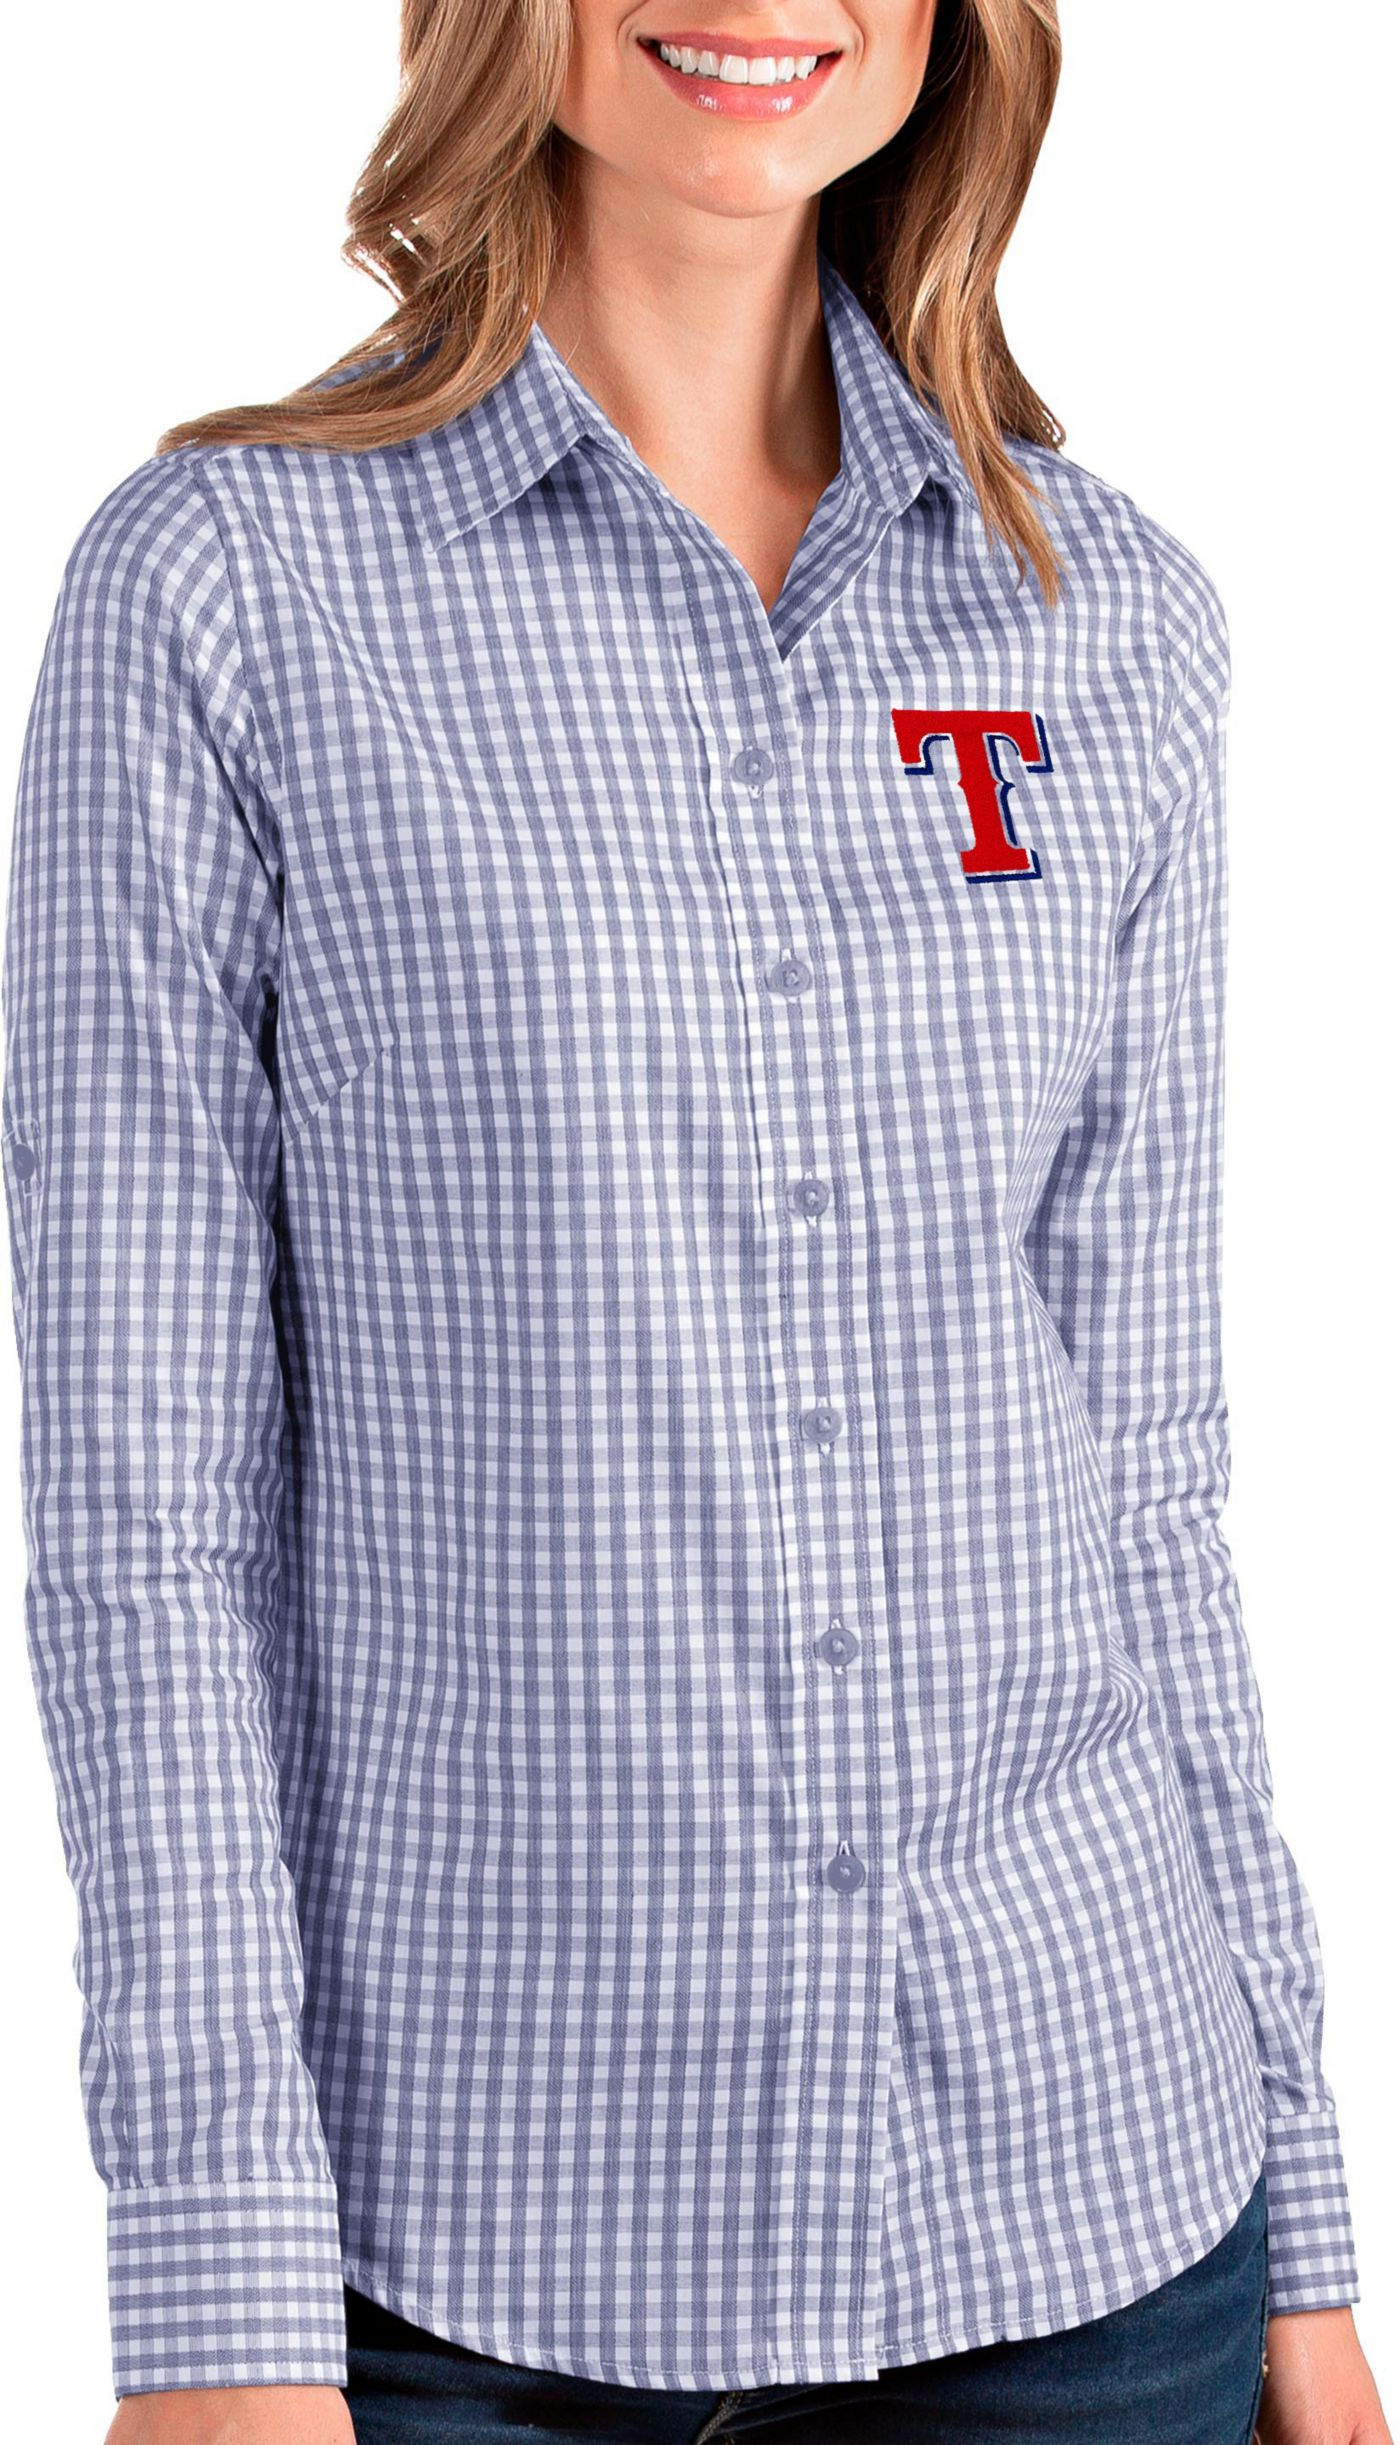 Antigua Women's Texas Rangers Structure Button-Up Royal Long Sleeve Shirt